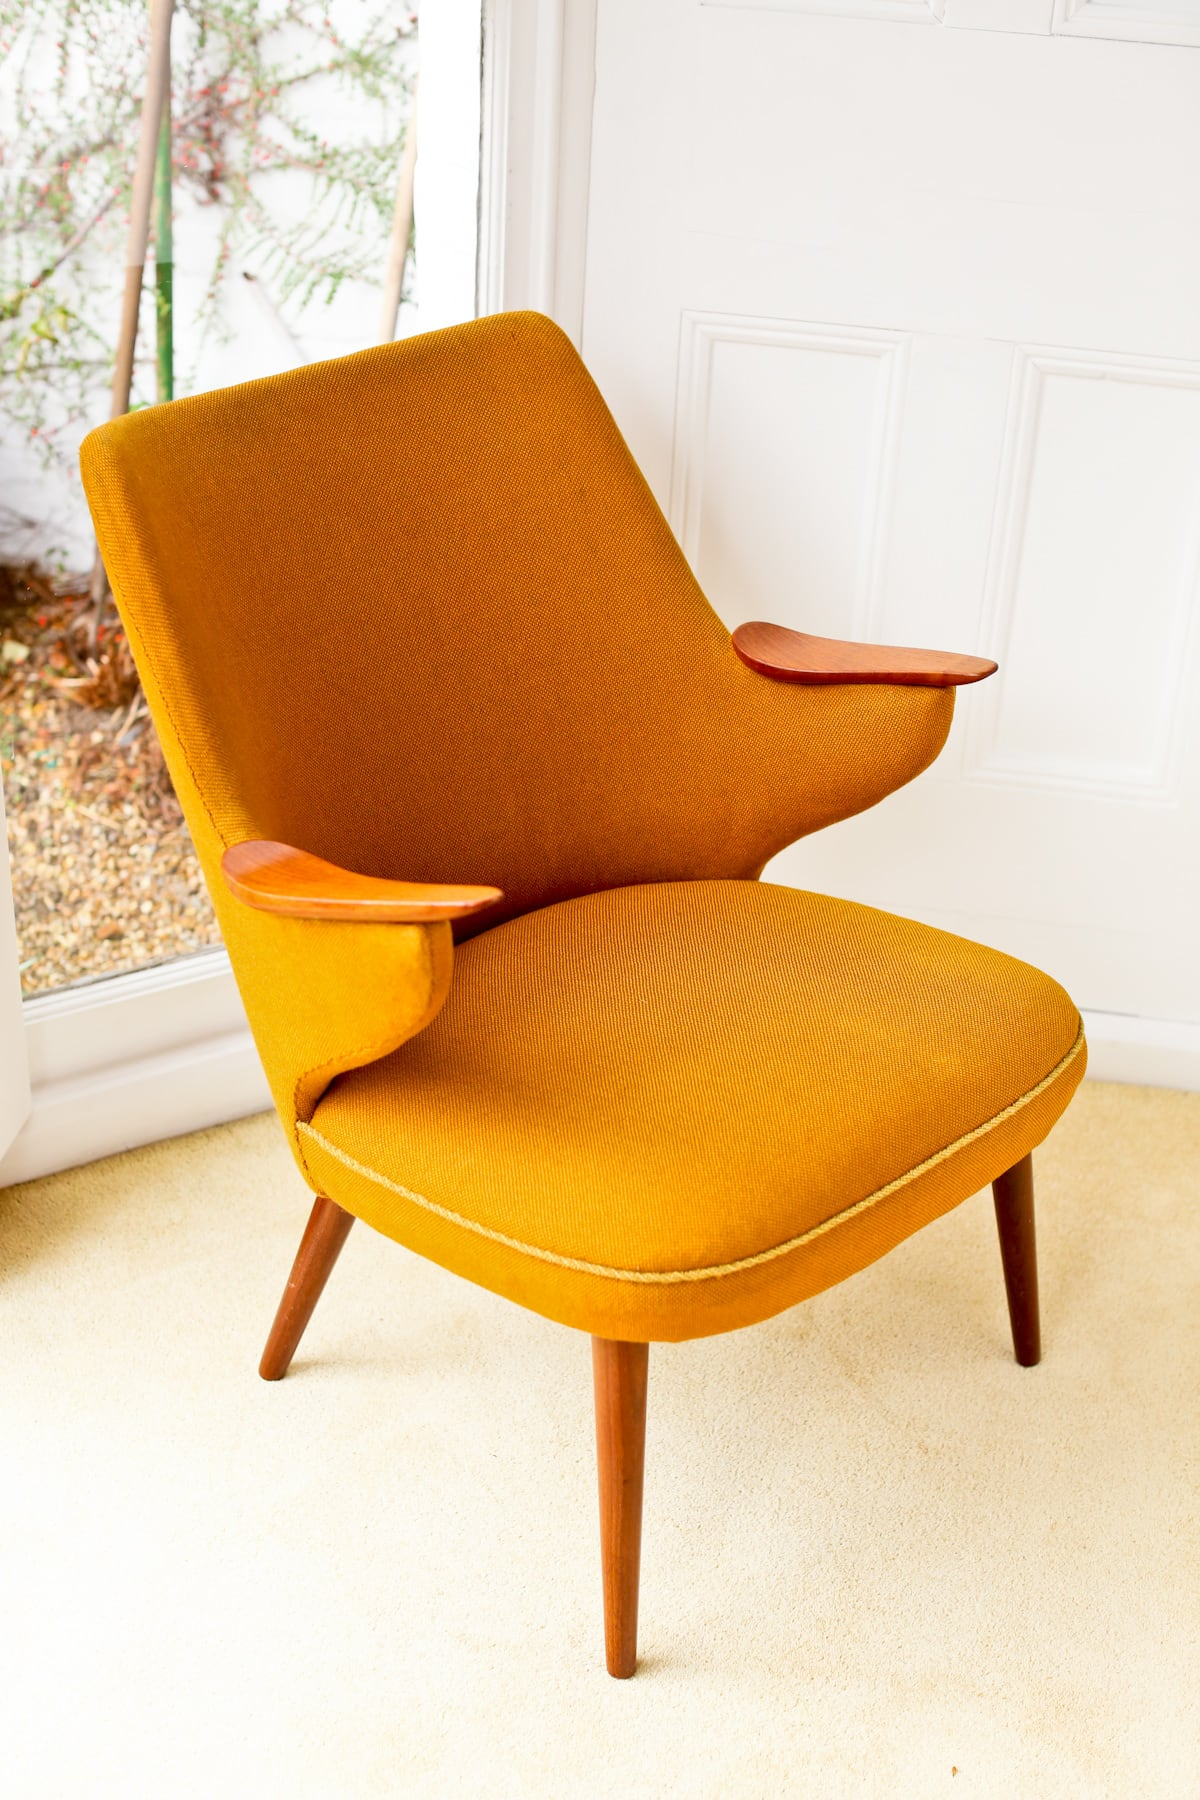 Danish armchair mid century furniture London teak & wool 1950's